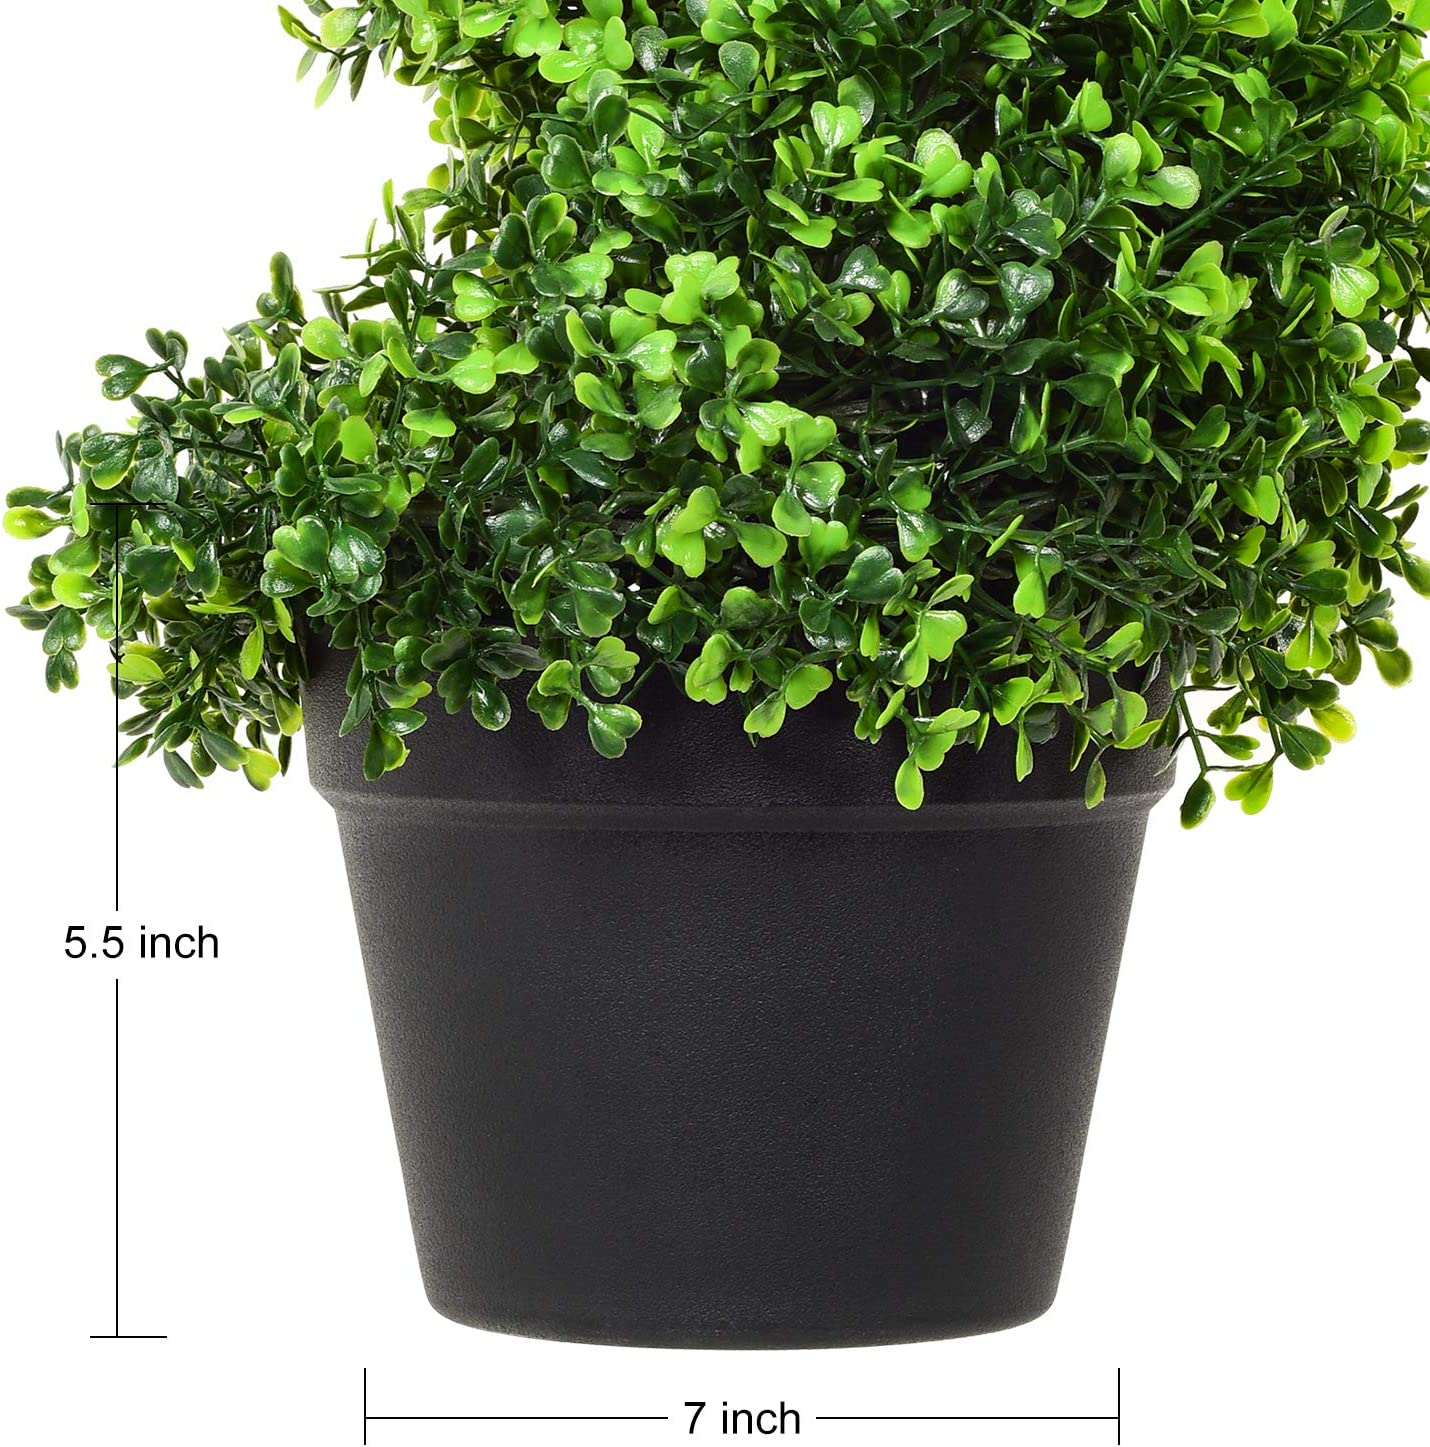 DearHouse 4 Feet Artificial Cypress Spiral Topiary Trees, 2Pack Potted Indoor or Outdoor Spiral Boxwood Trees -